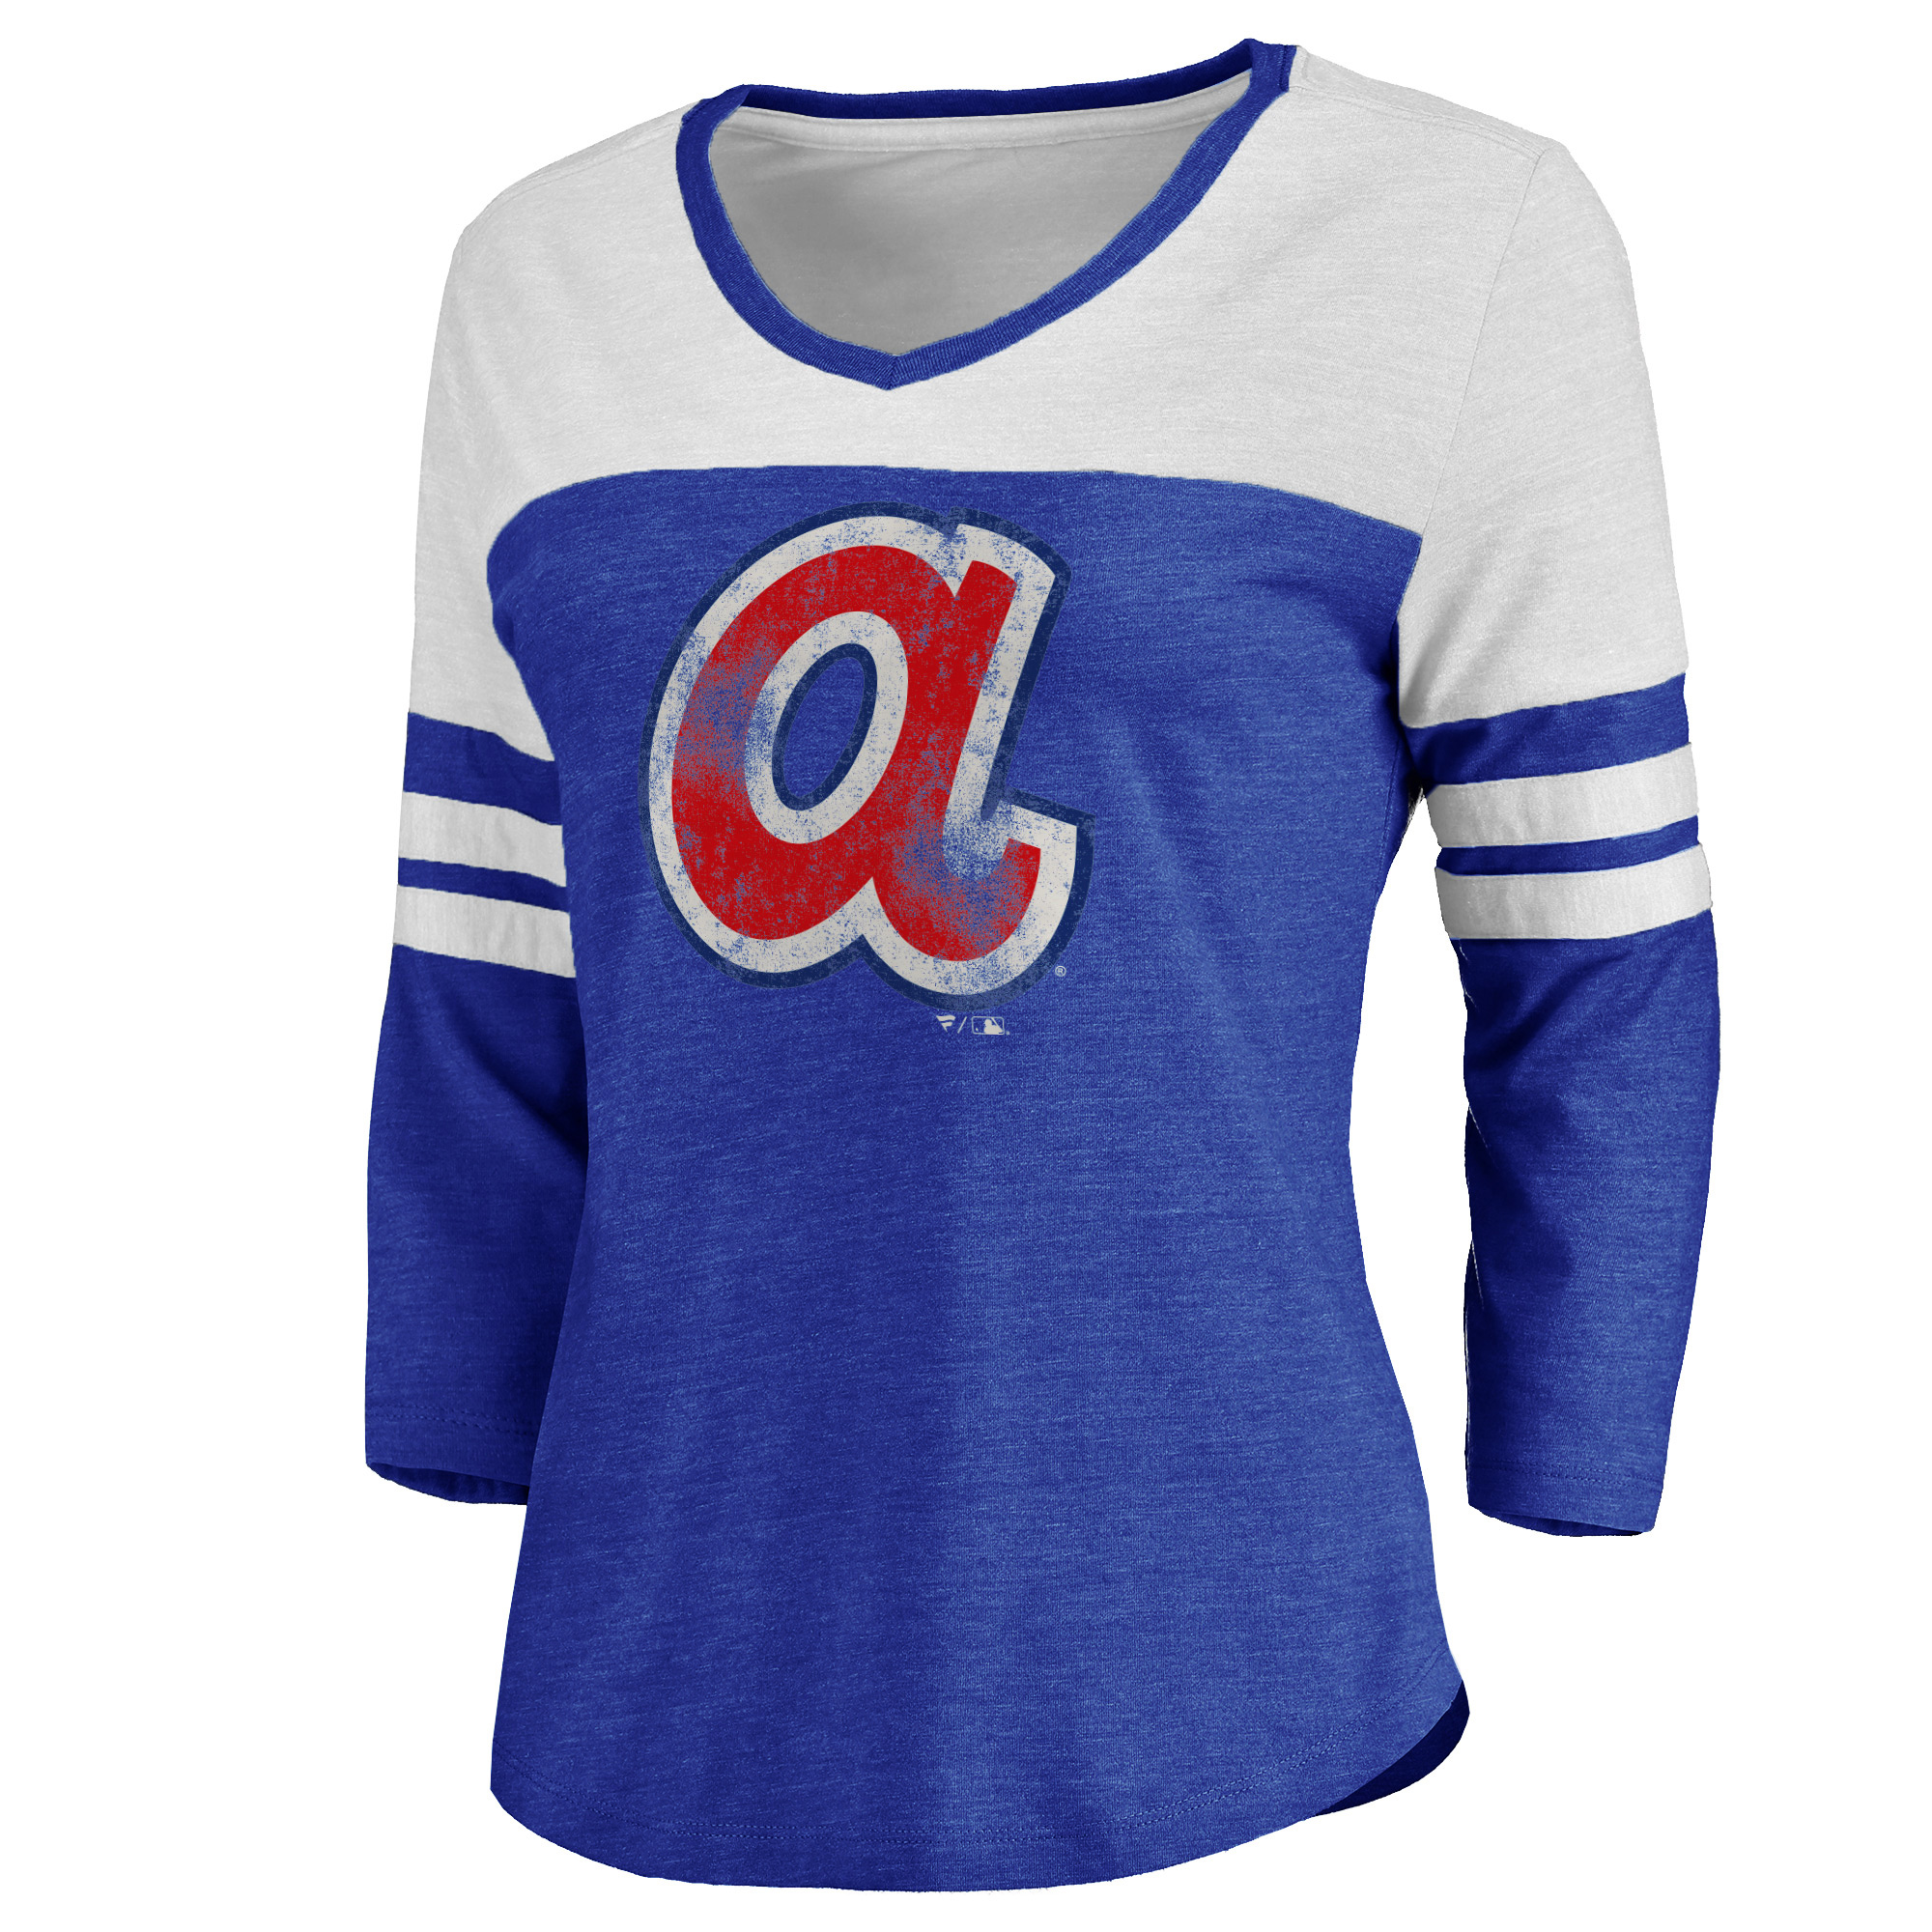 Atlanta Braves Women's Cooperstown Two Tone Three-Quarter Sleeve Tri-Blend T-Shirt - Royal/White